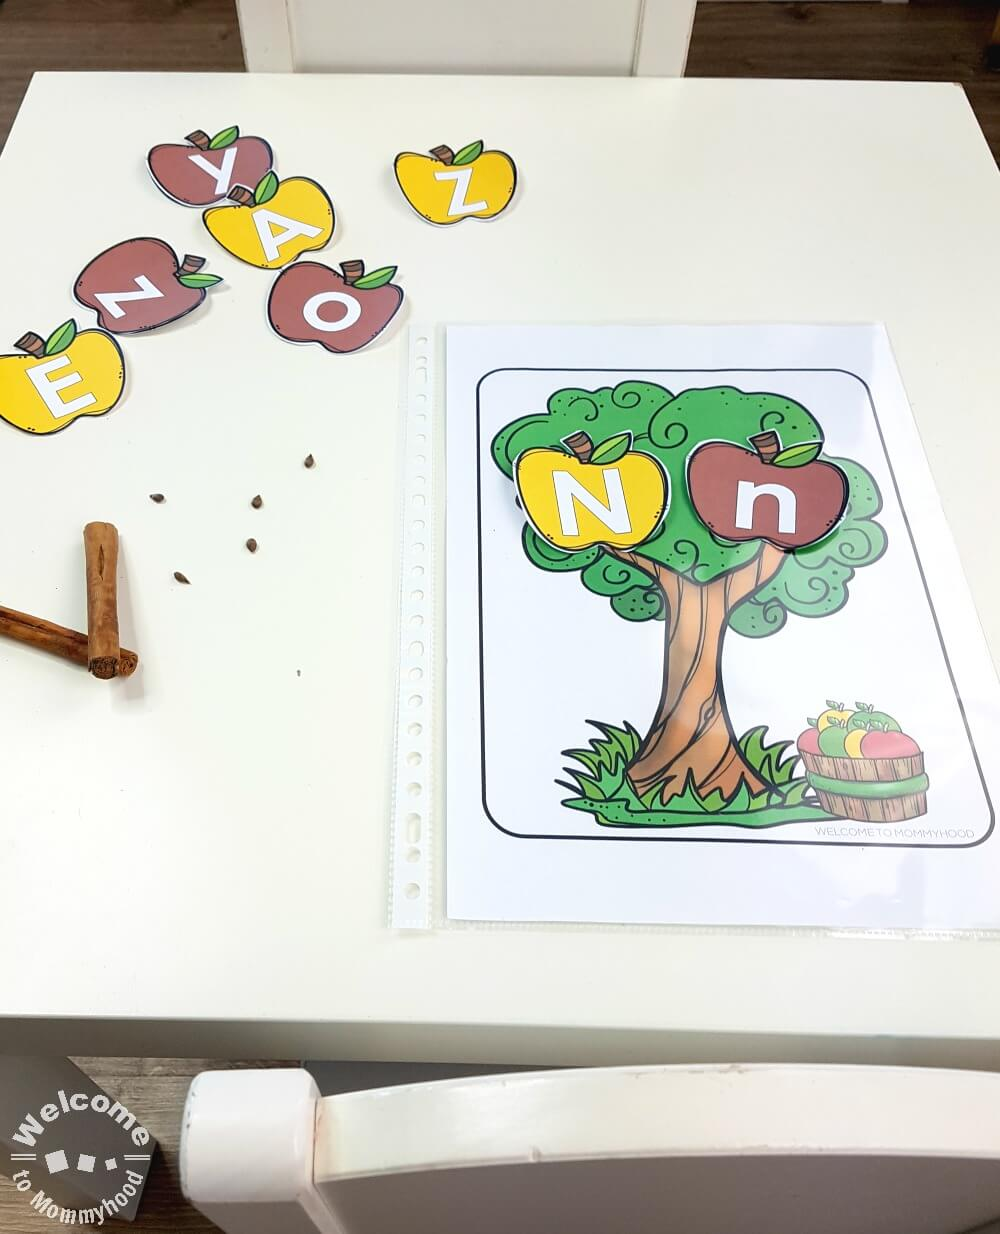 You can use these printables to create hands-on, engaging apple activities for preschoolers. Your students will love practicing letters and phonics! #montessori #appleactivitiesforpreschoolers #preschoolactivities #appleactivities